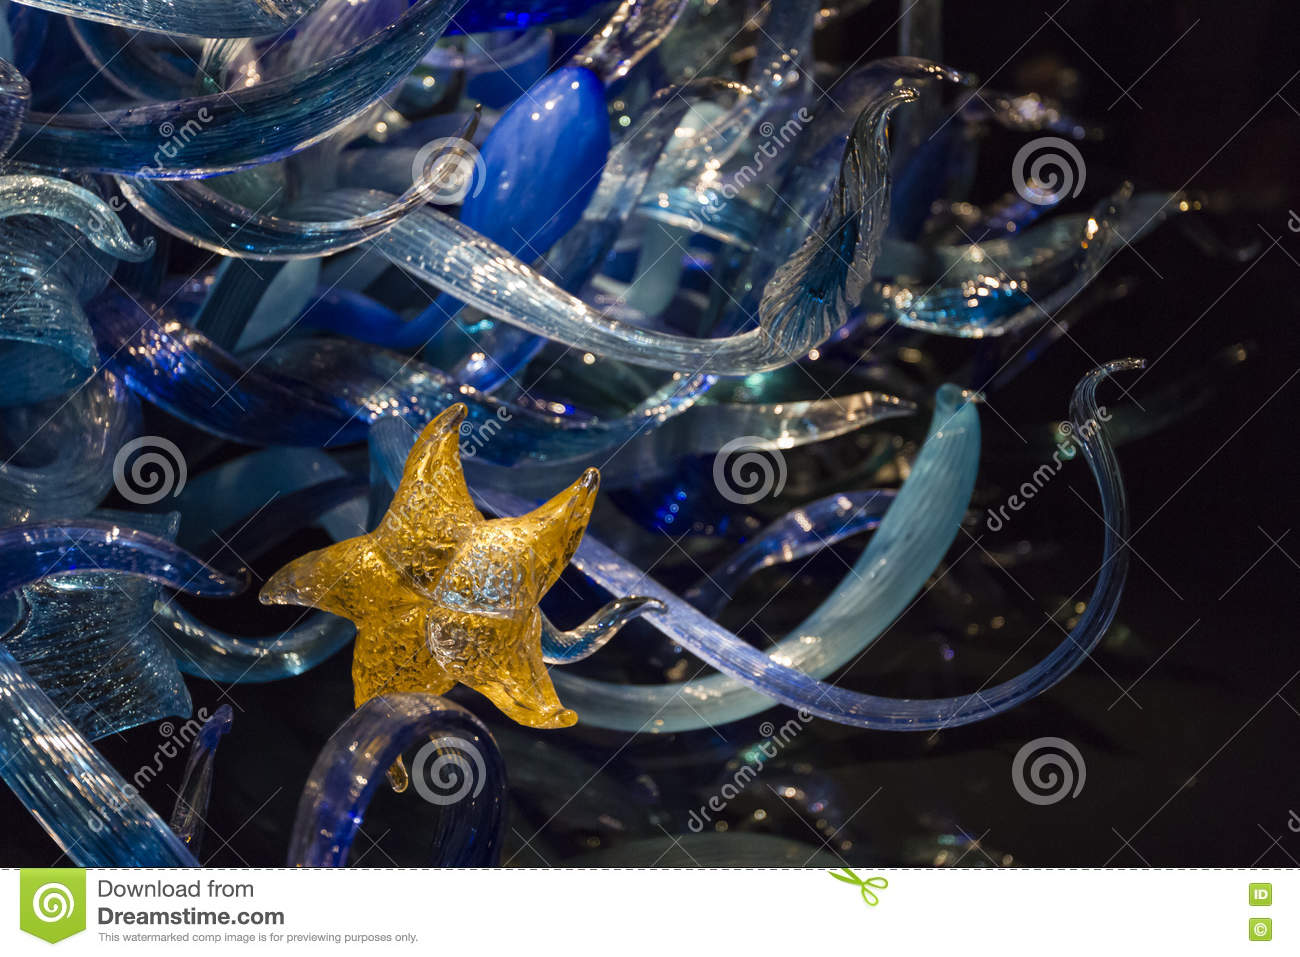 Seattle_Chihuly_Garden_Glass-10